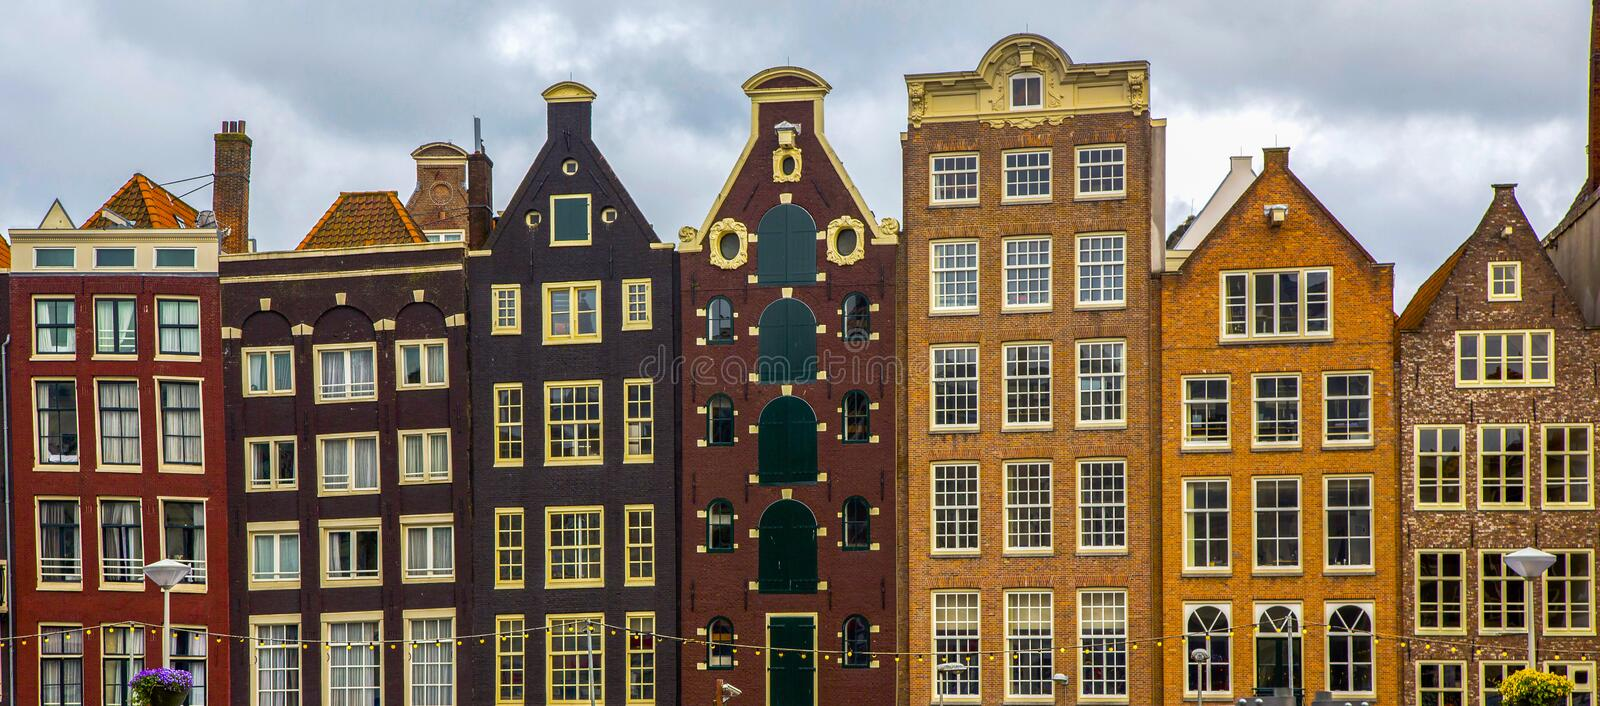 The Netherlands, Holland, Amsterdam, architecture. The Netherlands, Holland, Amsterdam, the city`s architecture, old houses royalty free stock photography